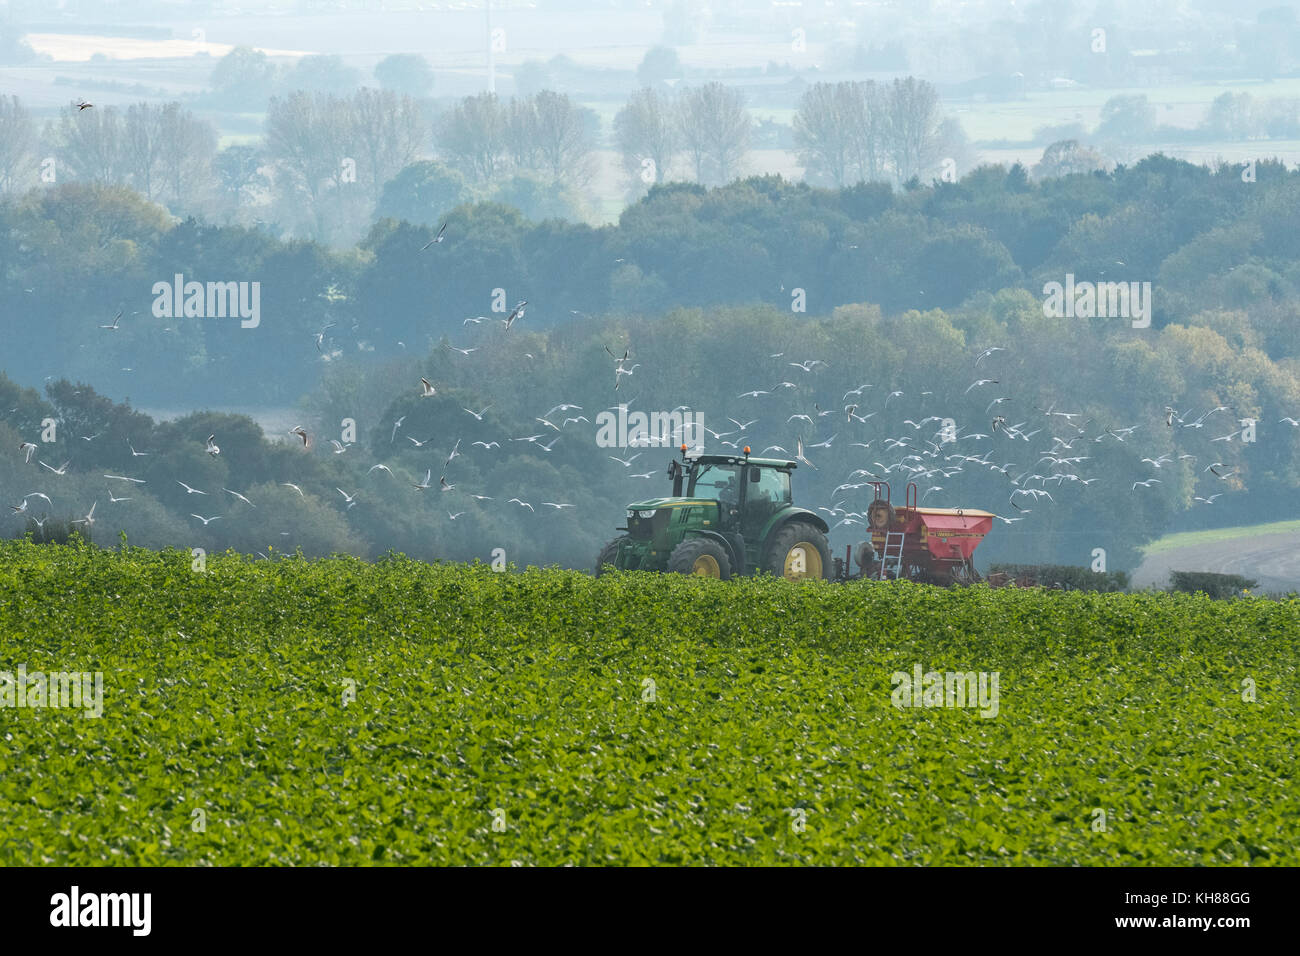 Followed by gulls, green tractor pulling seed drill, working in arable farm field overlooking scenic countryside Stock Photo